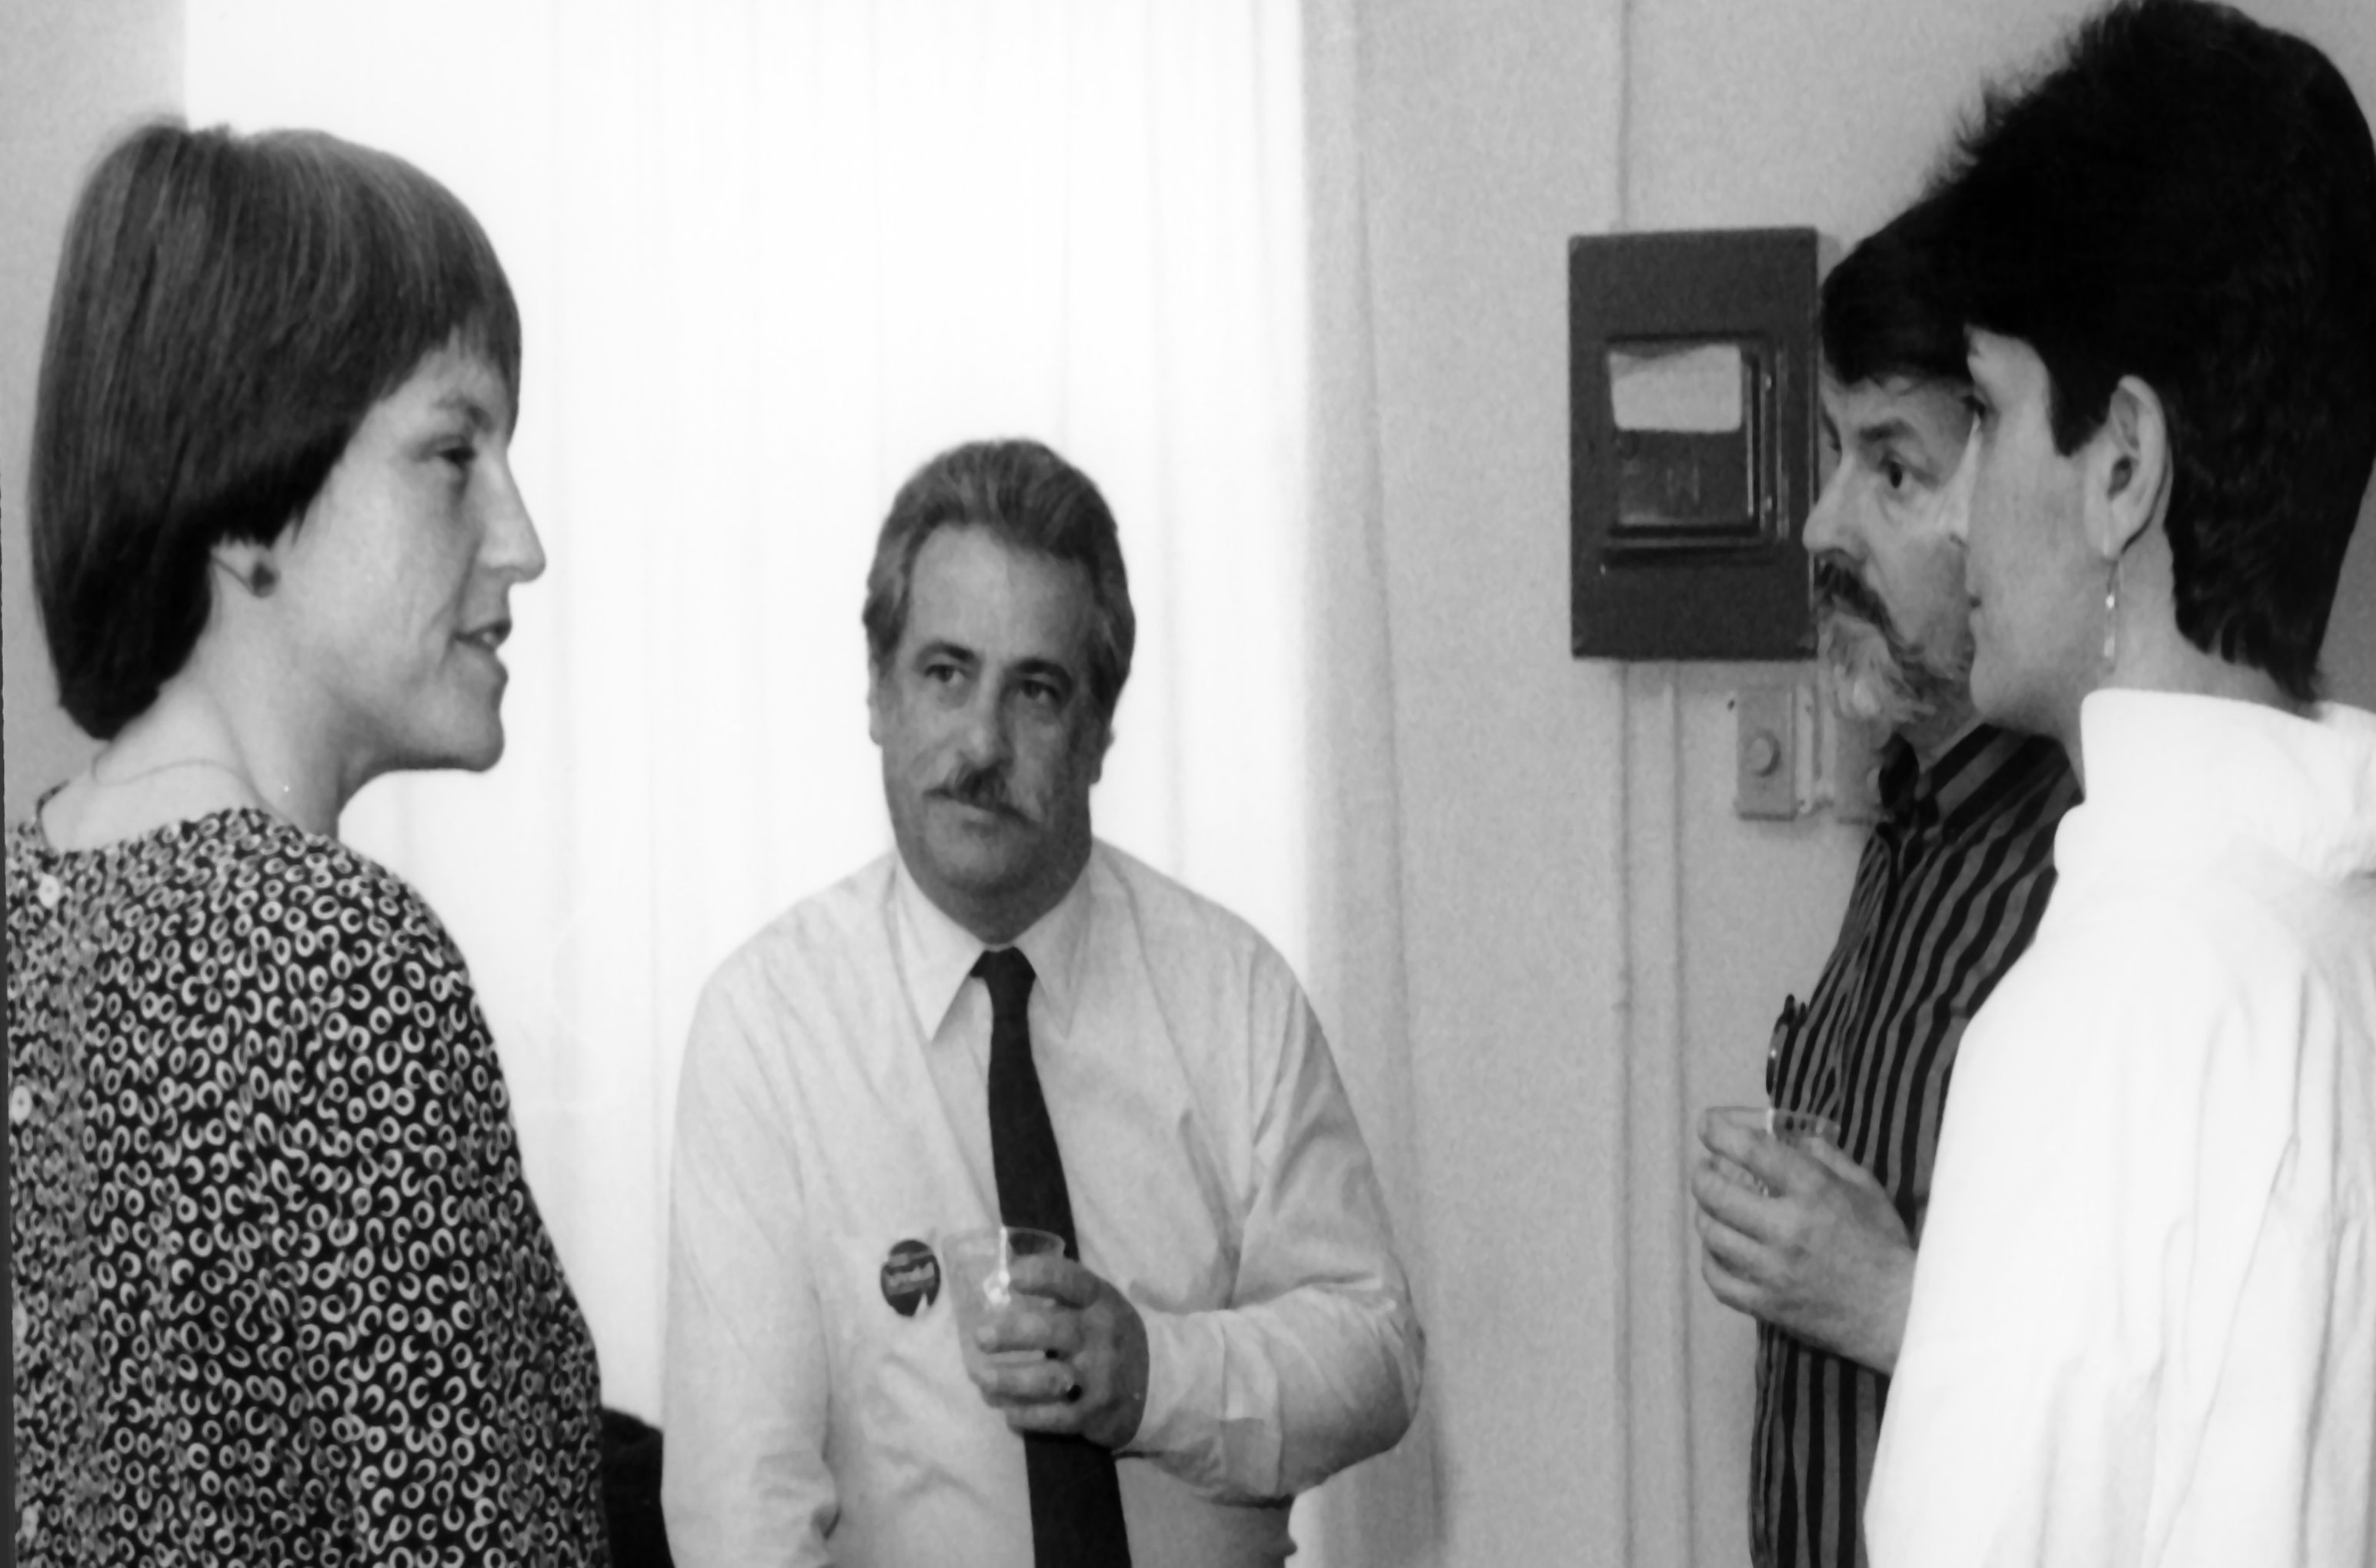 Roberta Achtenberg (left) talking to a small group of people at a fundraiser held at Park Street Community Center. San José State University Special Collections & Archives.